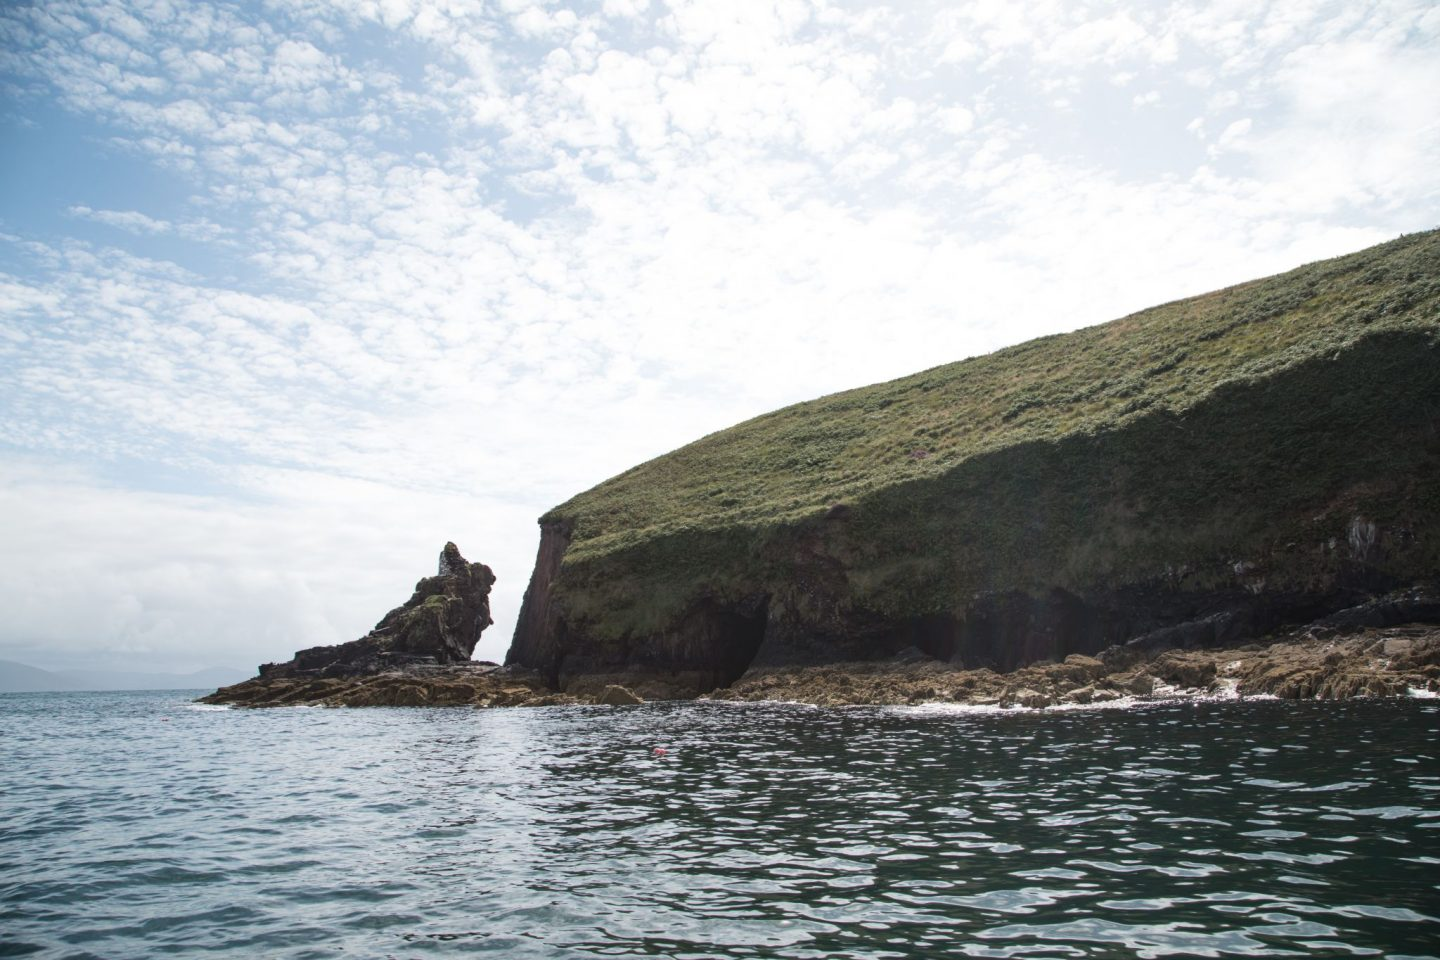 A Weekend in Dingle, Co. Kerry, Ireland. Wild Atlantic Way. Nadia El Ferdaoussi travel writer the daily s'elf Dingle Bay Fungie boat trip